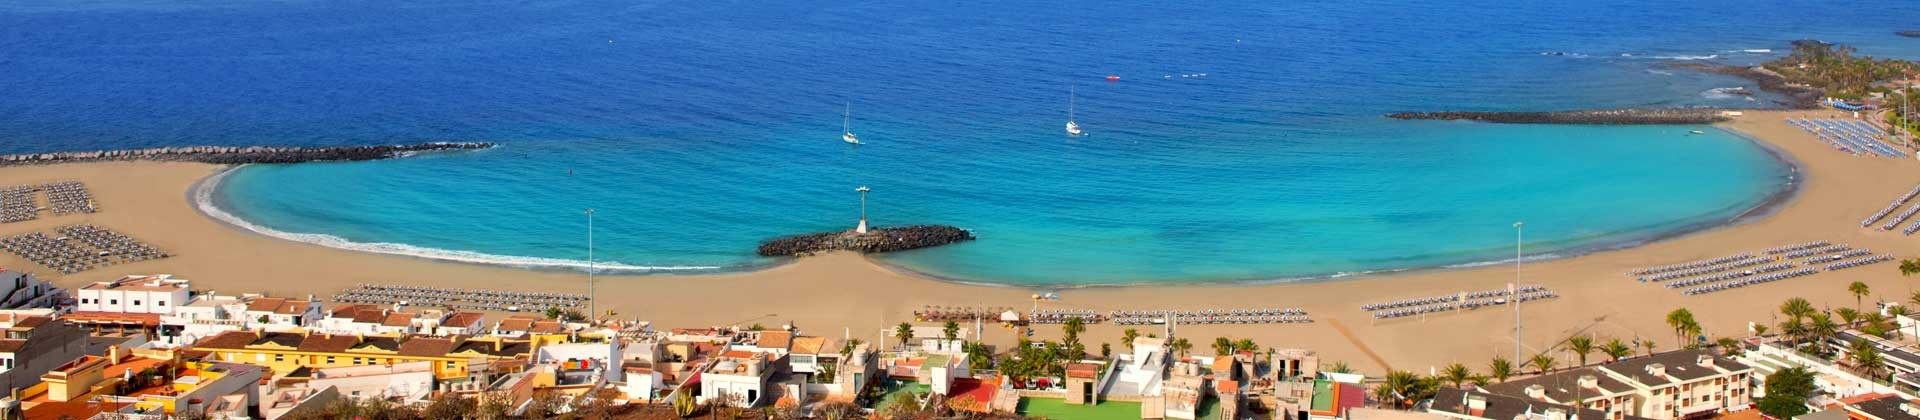 https://www.goodmorningtenerife.com/wp-content/uploads/2014/08/01_slide_beaches_GM_Tenerife1-1920x420.jpg